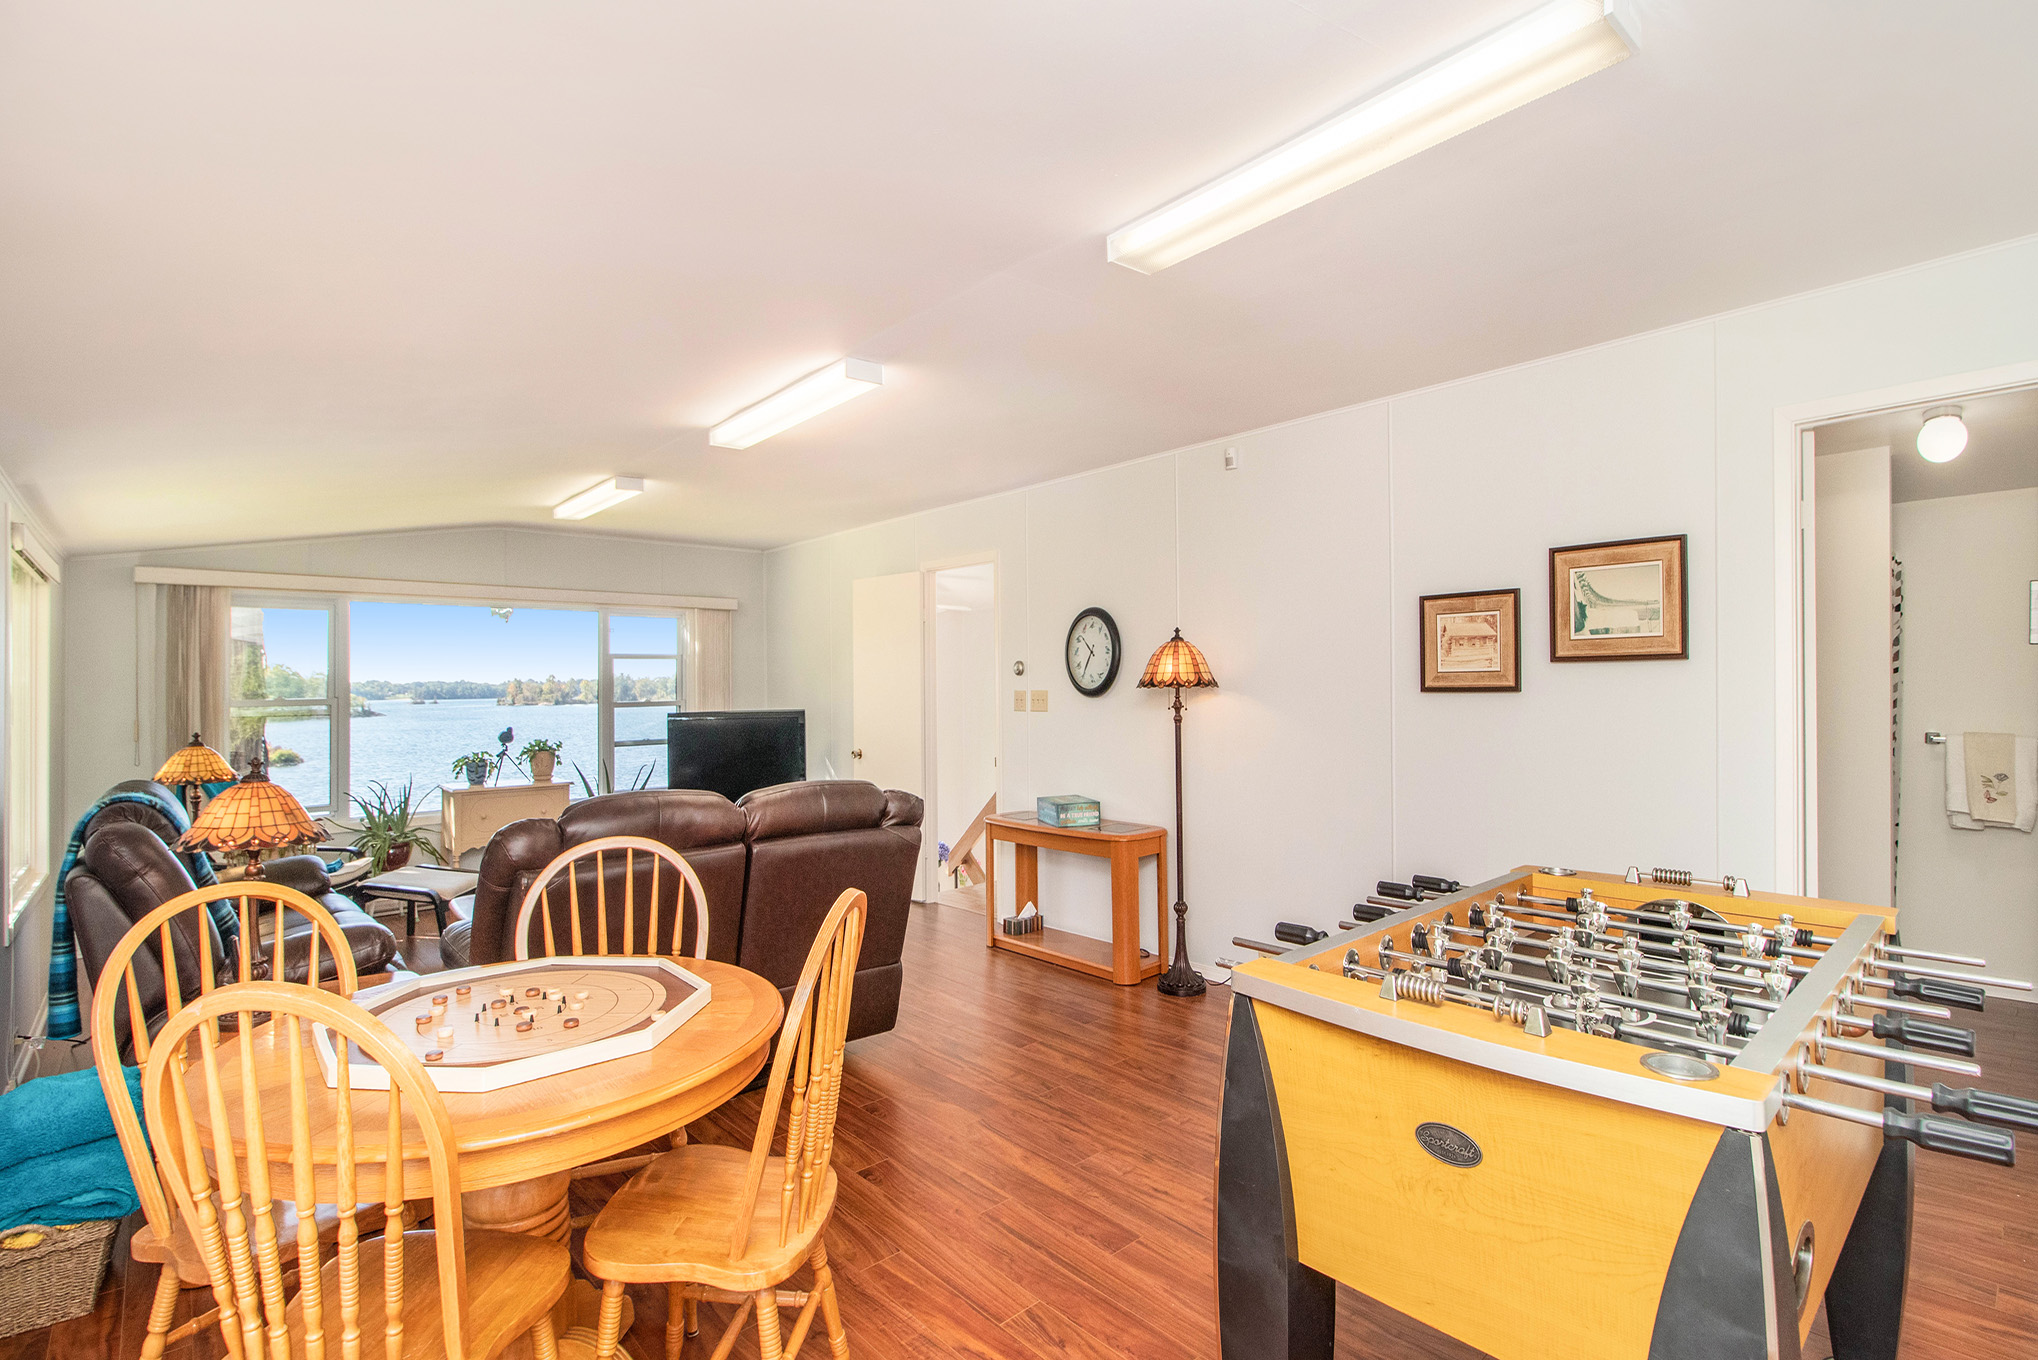 An absolutely fantastic space with stunning views both East and South, that's currently used as a family room and games area, has a 3 piece bath as well attached.